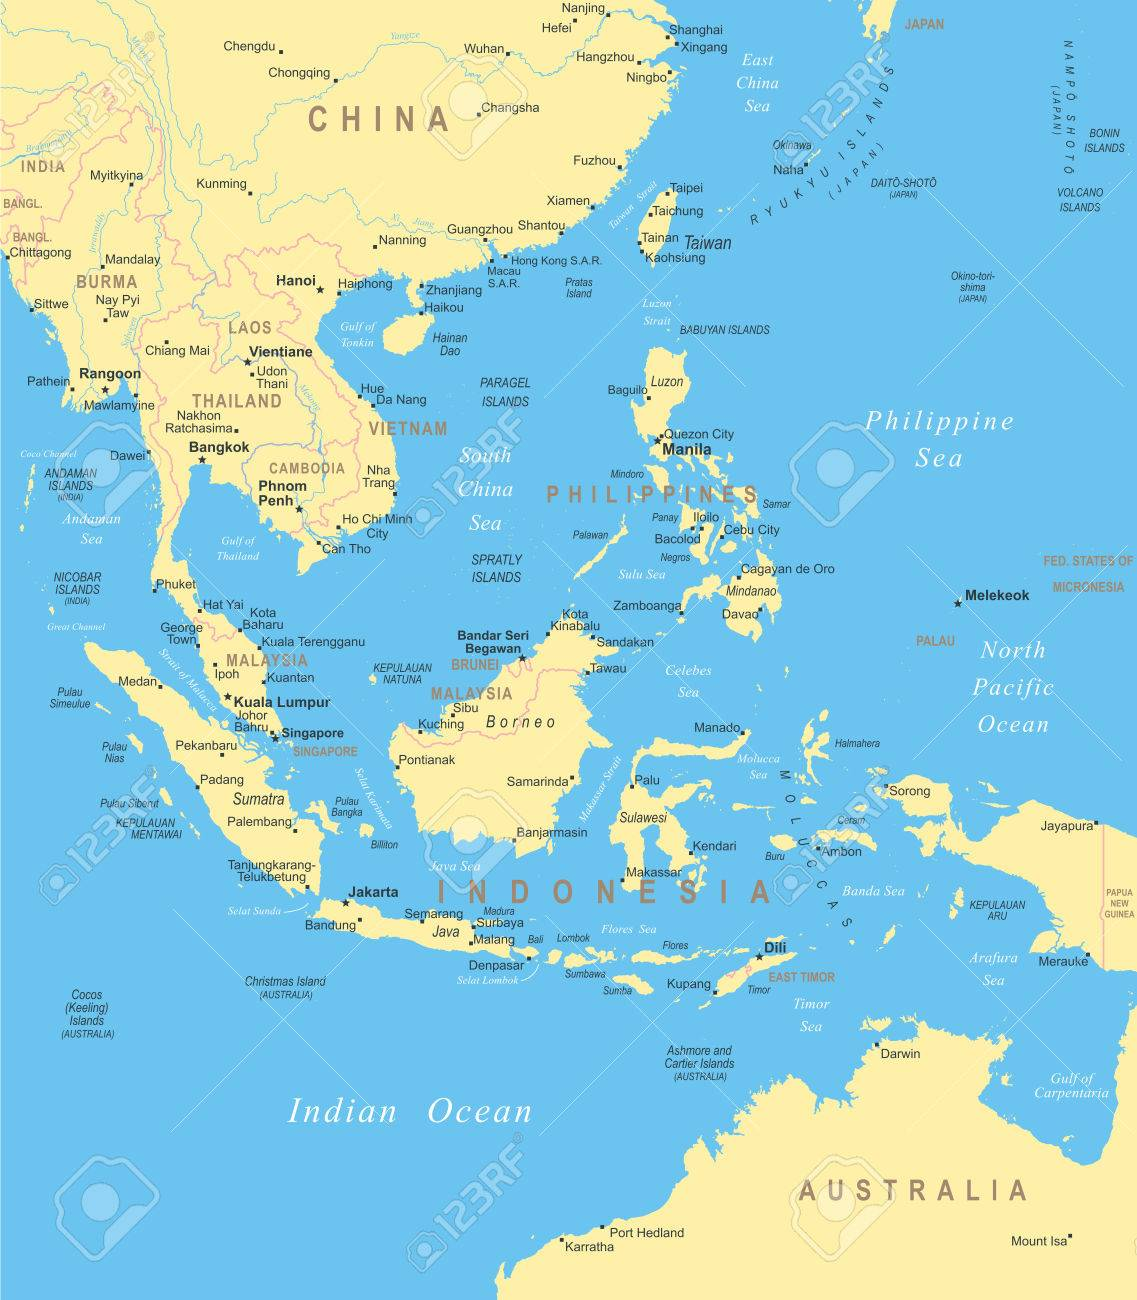 Southeast asia map illustration royalty free cliparts southeast asia map illustration stock vector 49360573 publicscrutiny Gallery